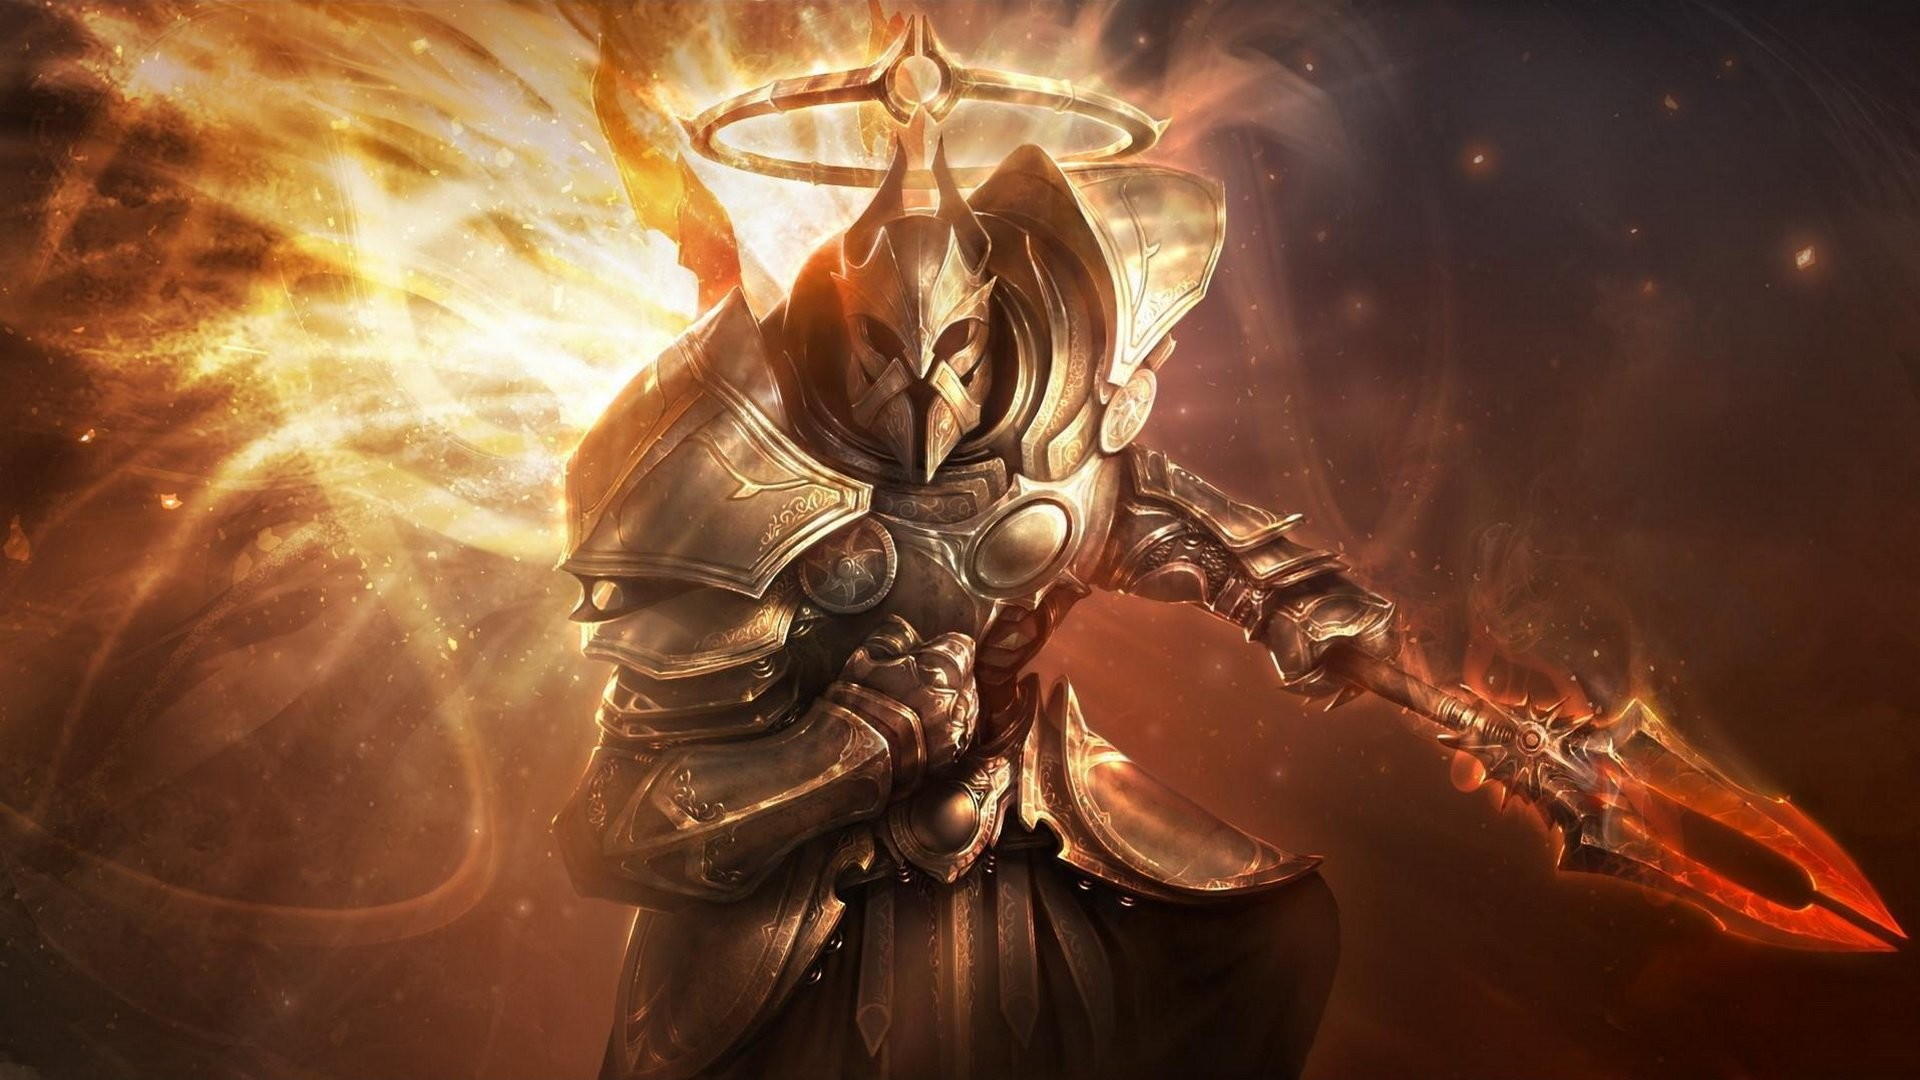 Hd Diablo 3 Wallpaper 77 Pictures